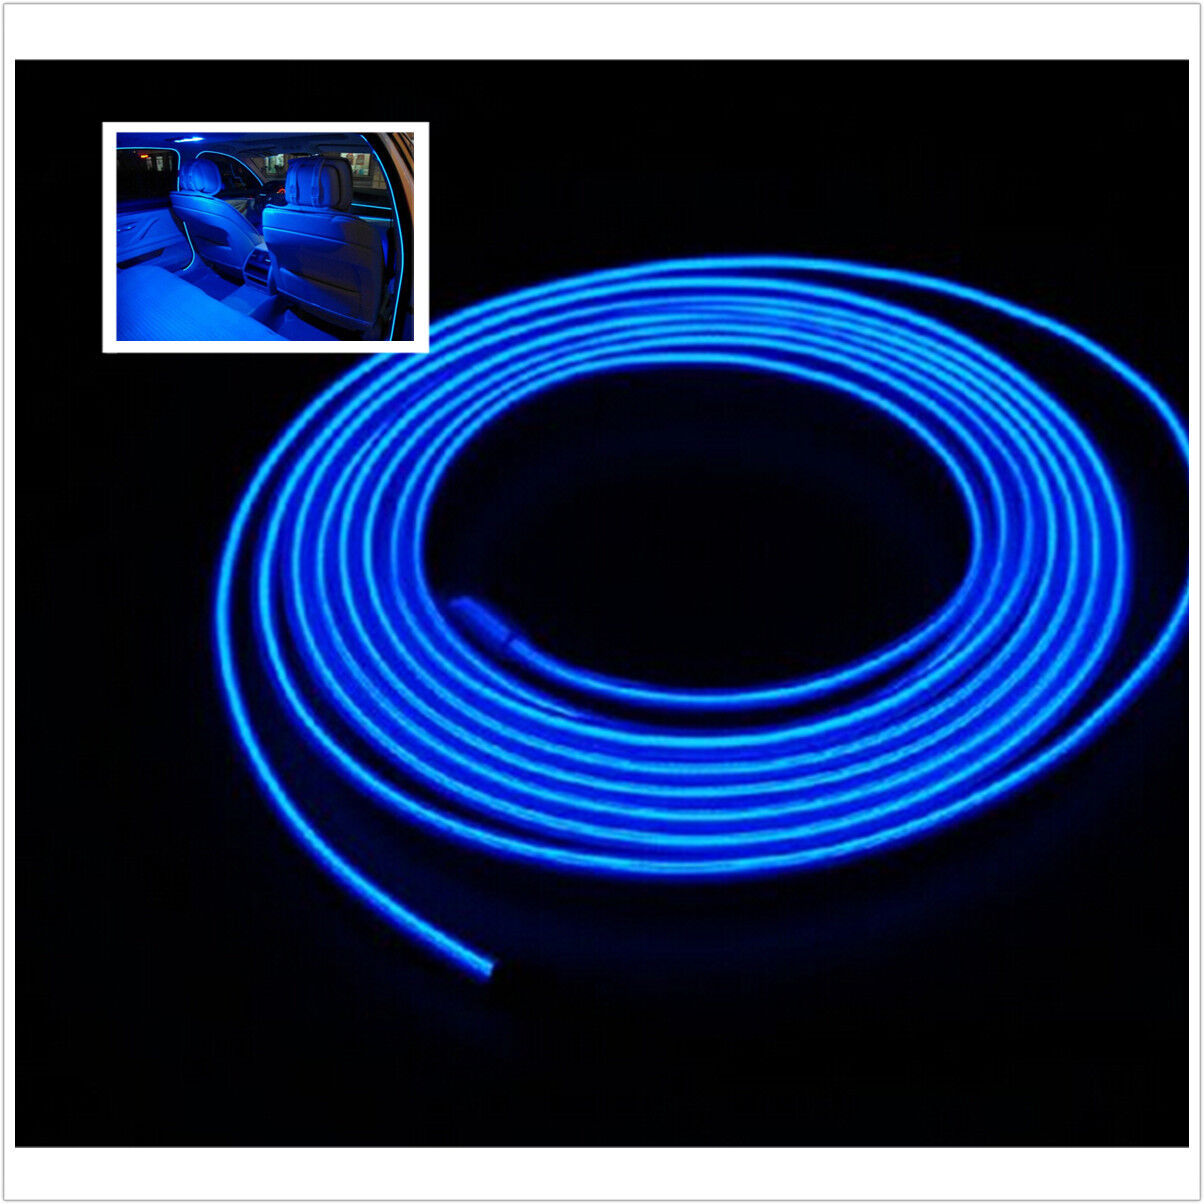 new 3m 12v blue led light glow el wire string strip rope tube car interior decor ebay. Black Bedroom Furniture Sets. Home Design Ideas